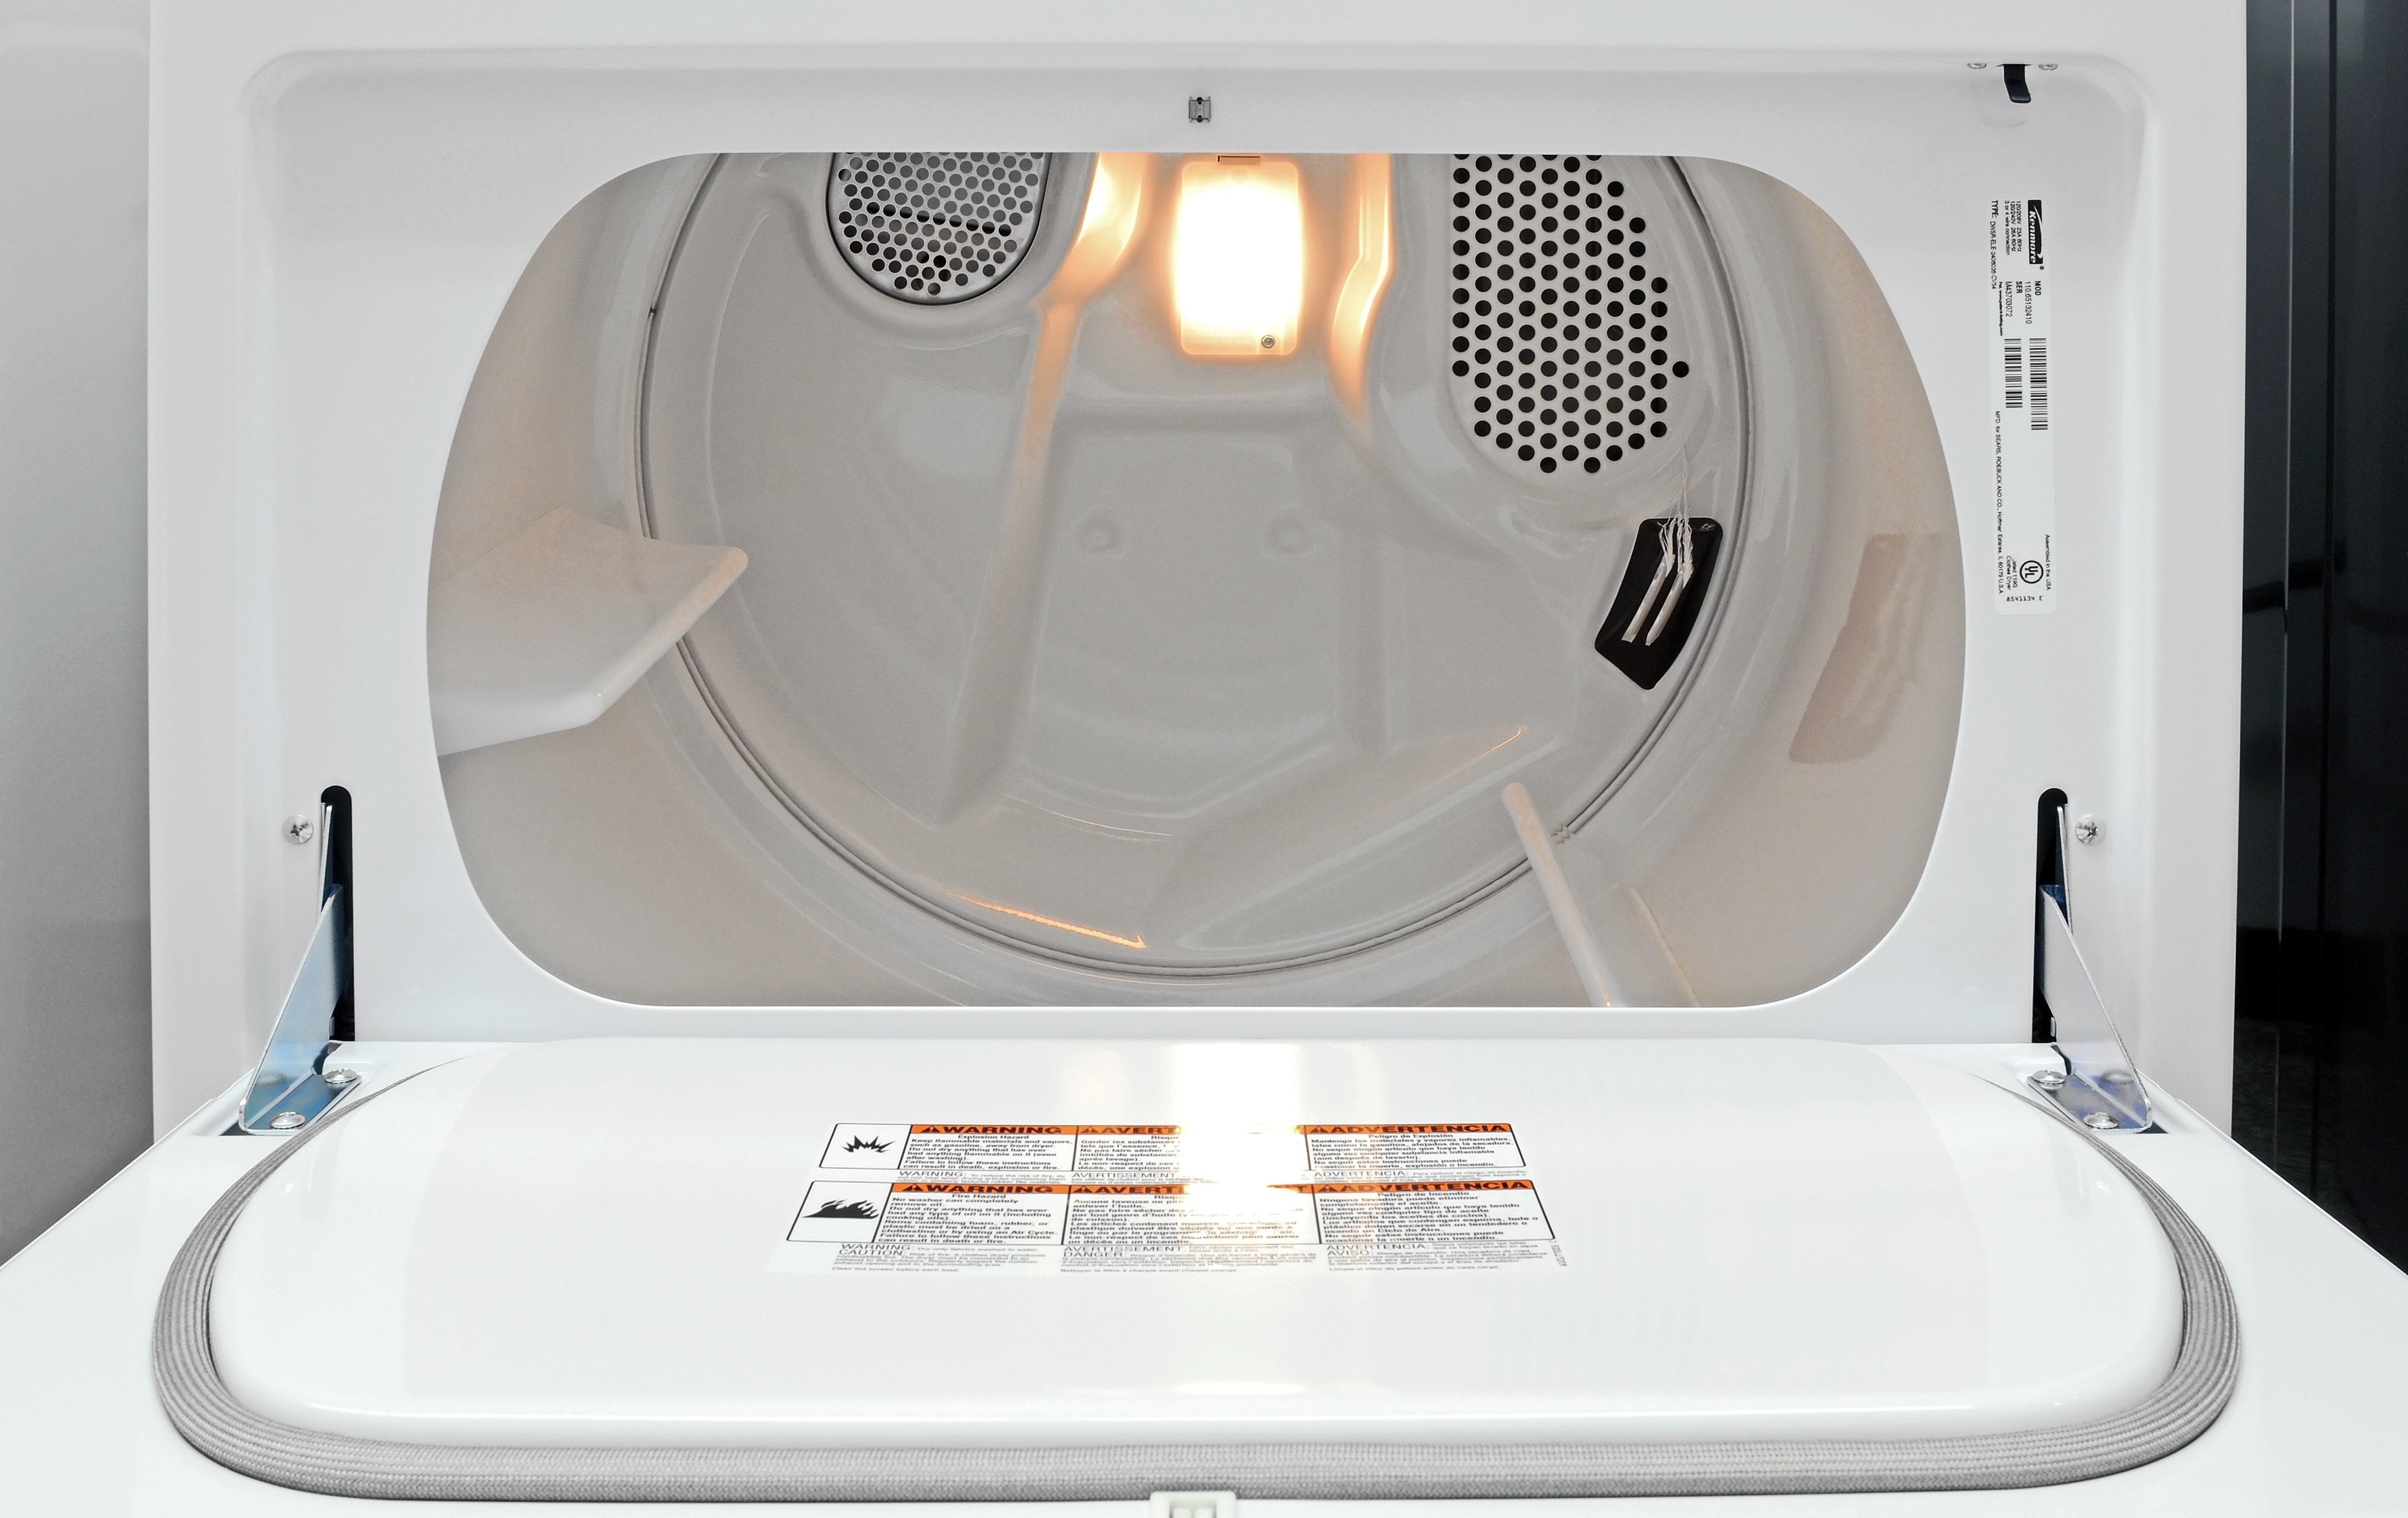 The Kenmore 65132's front-opening door makes loading the dryer easy, but be careful not to snag your clothes on the door latch.